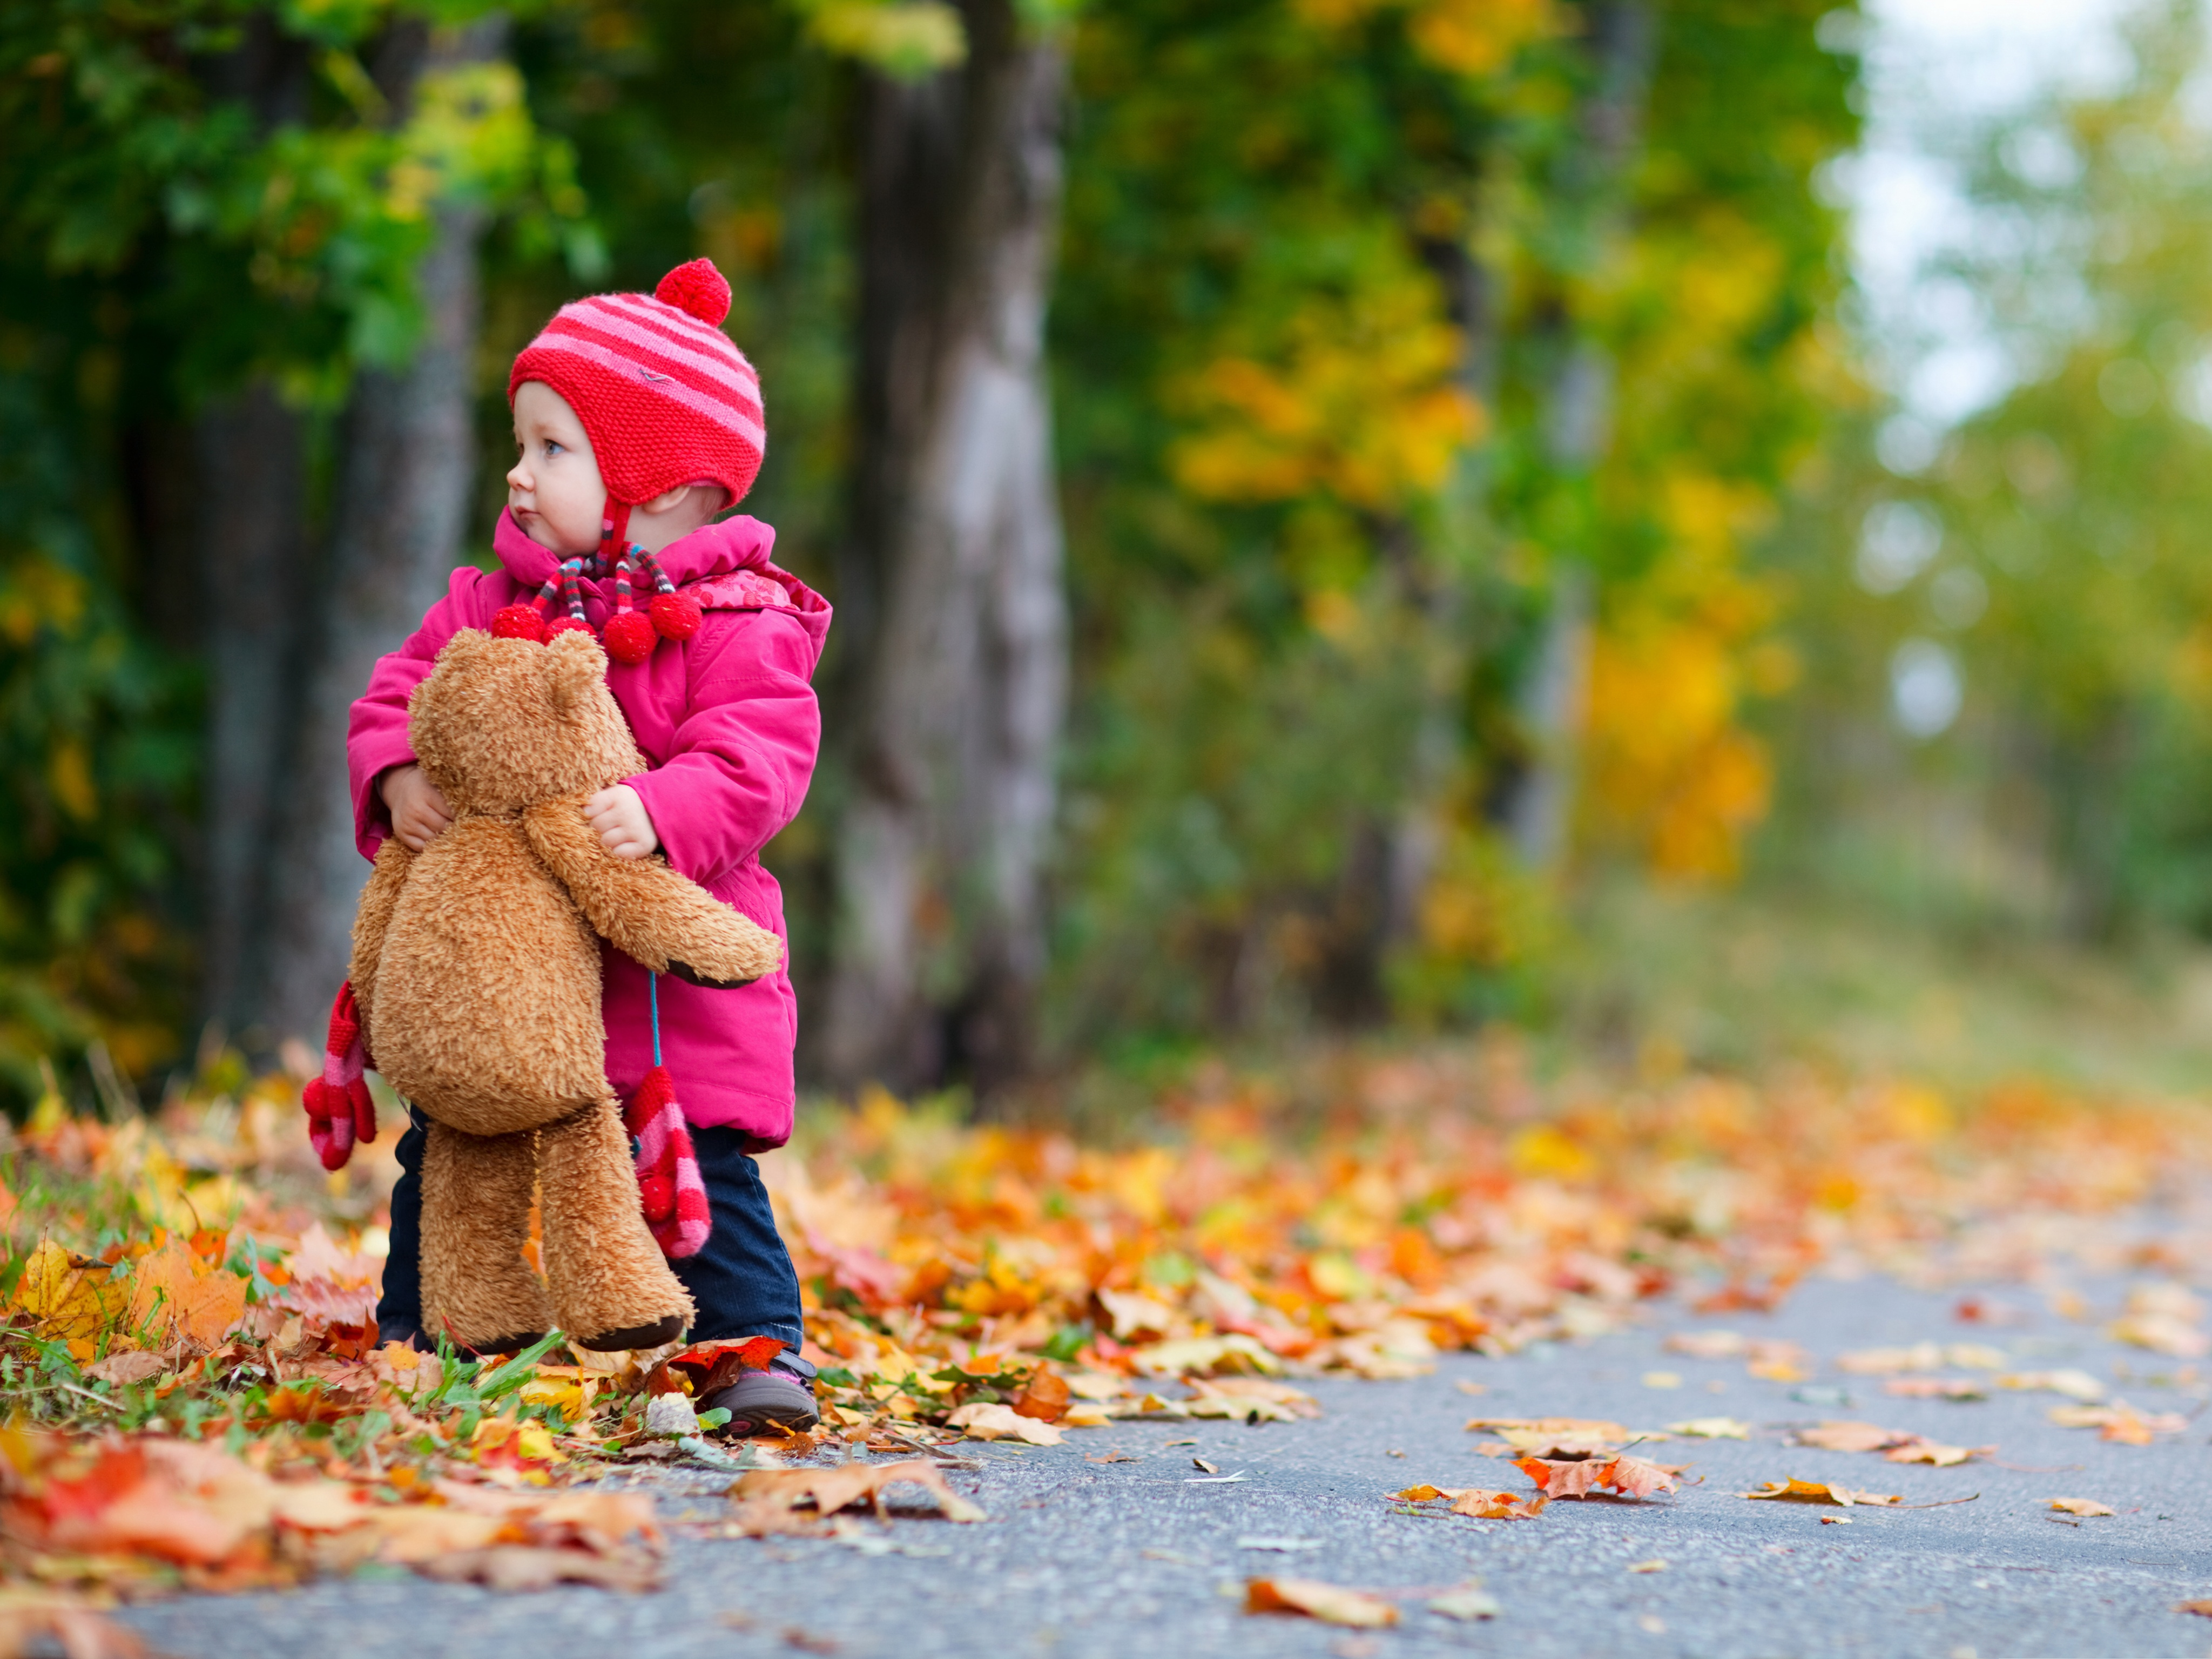 click to free download the wallpaper--Baby Girl Outdoor, Infant with Her Toy, Stay Outdoor in Autumn 4096X3072 free wallpaper download